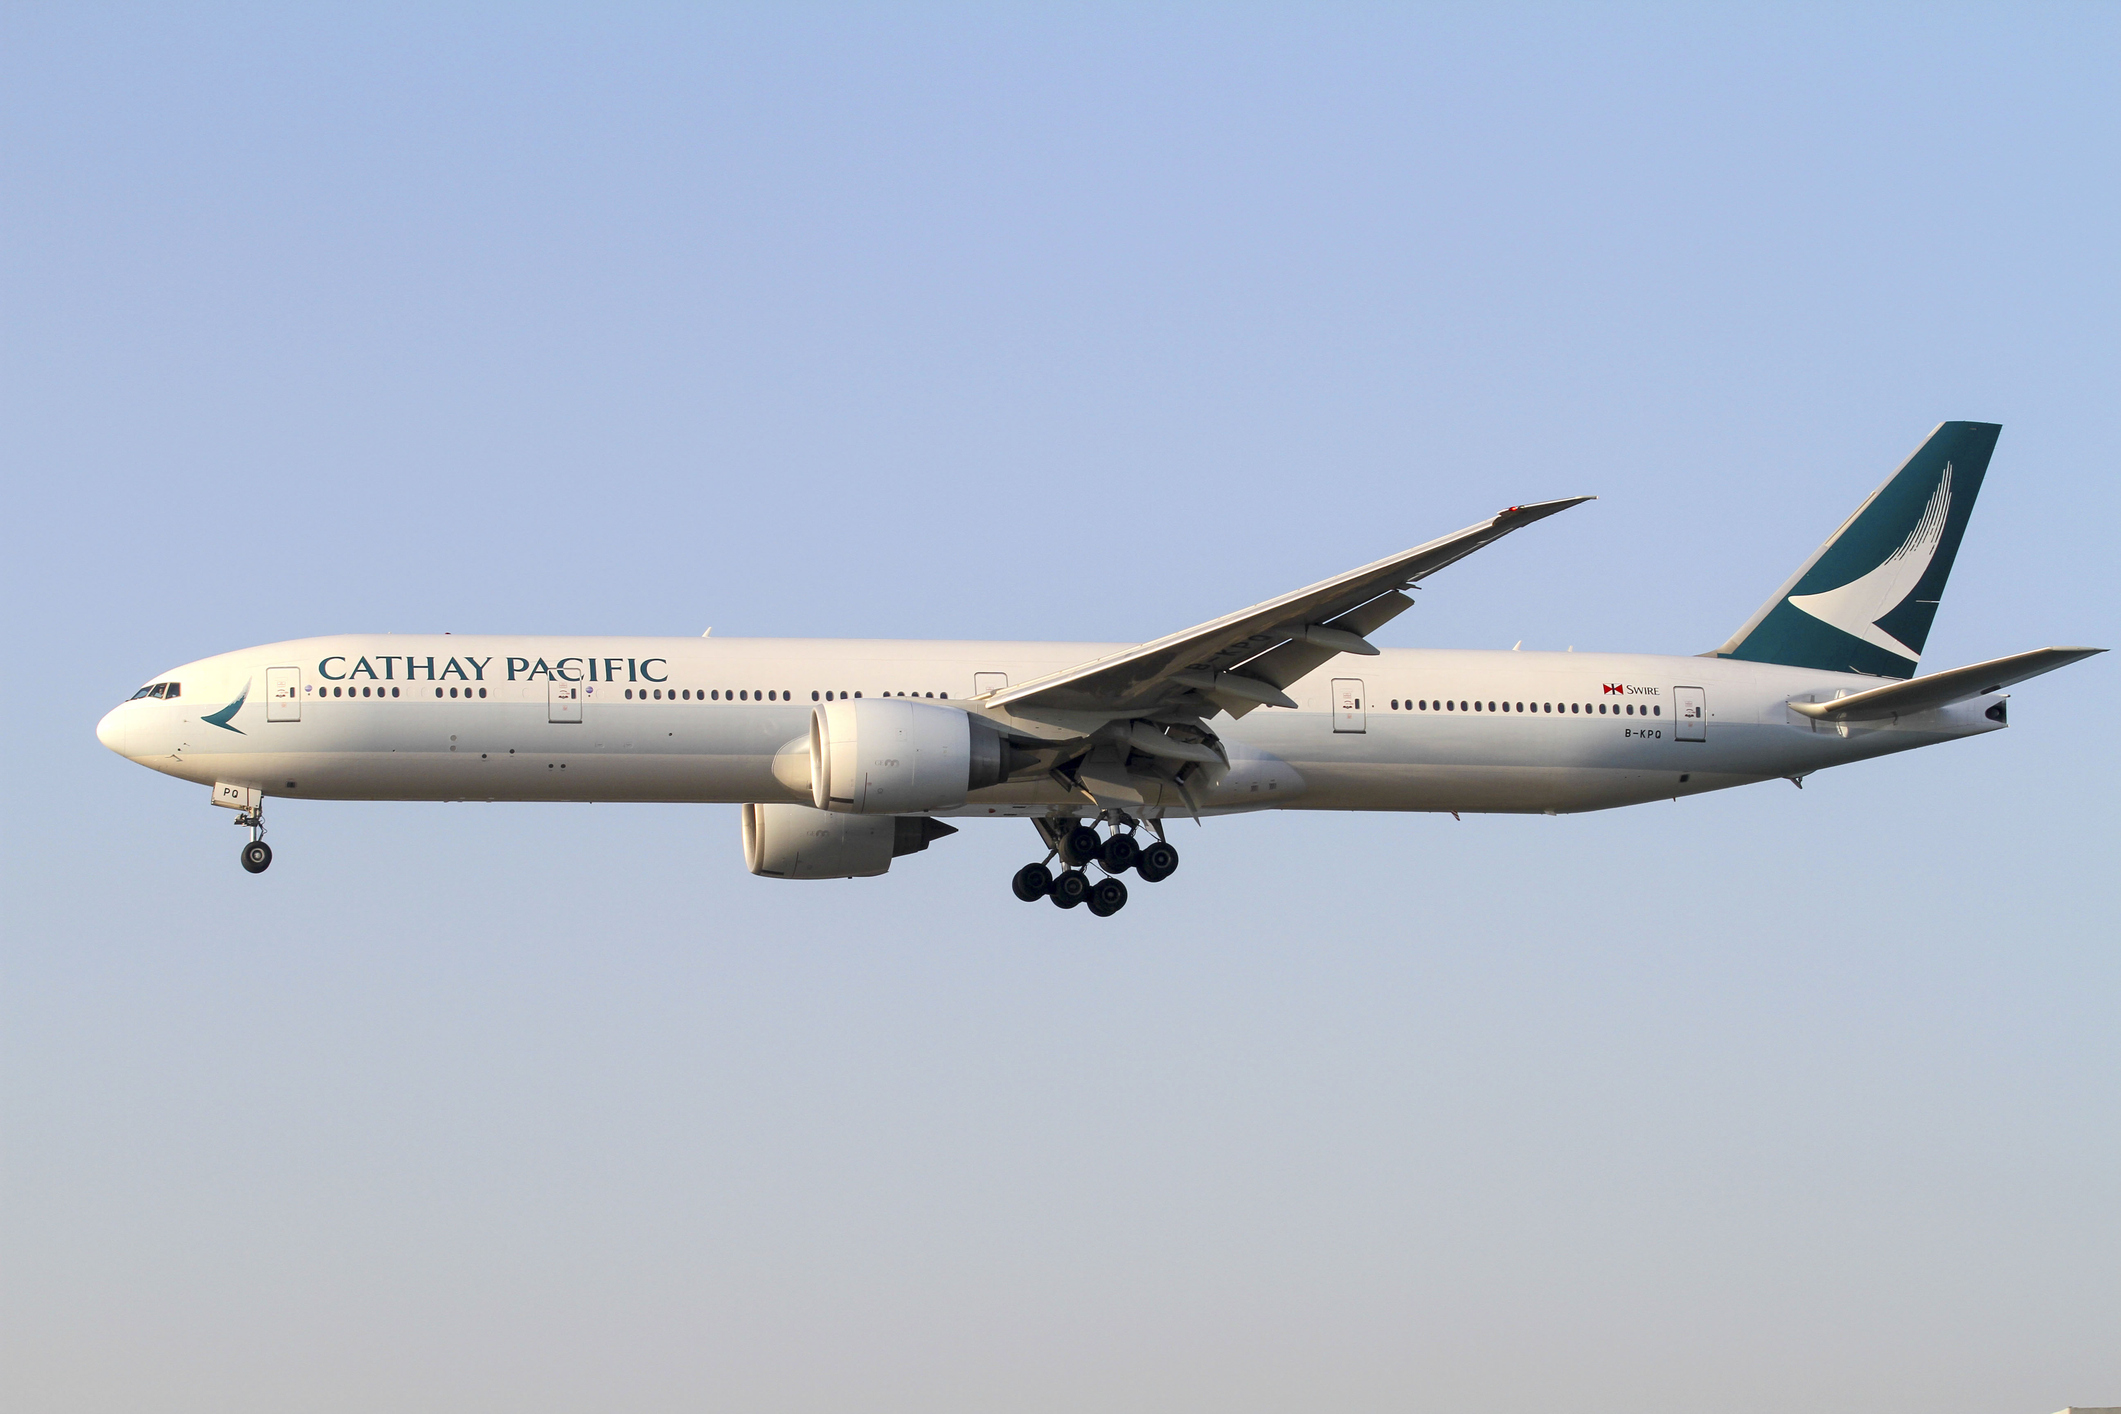 Cathay Pacific Boeing 777